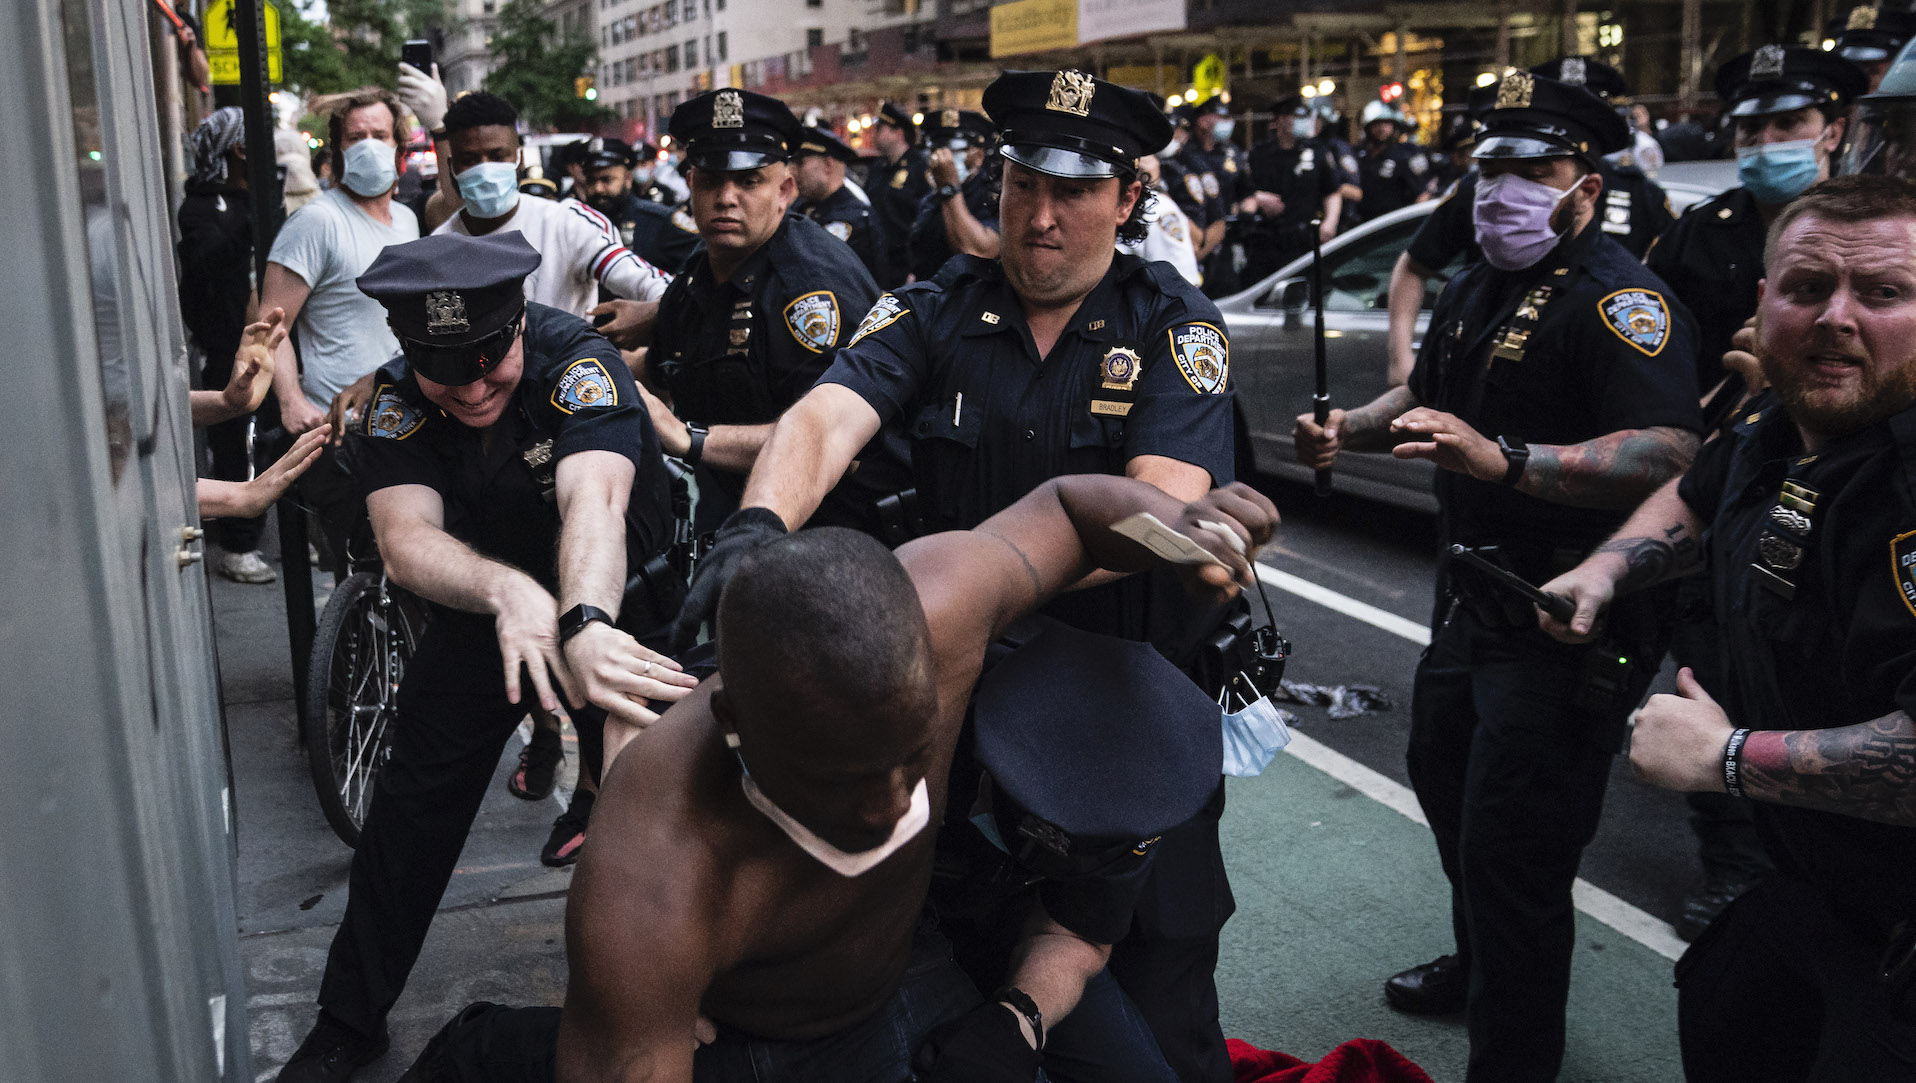 NEW YORK, NY - MAY 30: Officers pursue protesters as they march around downtown because of death of George Floyd while in police custody, on Saturday  May 30, 2020 in New York City, NY. (Photo by Jabin Botsford/The Washington Post)